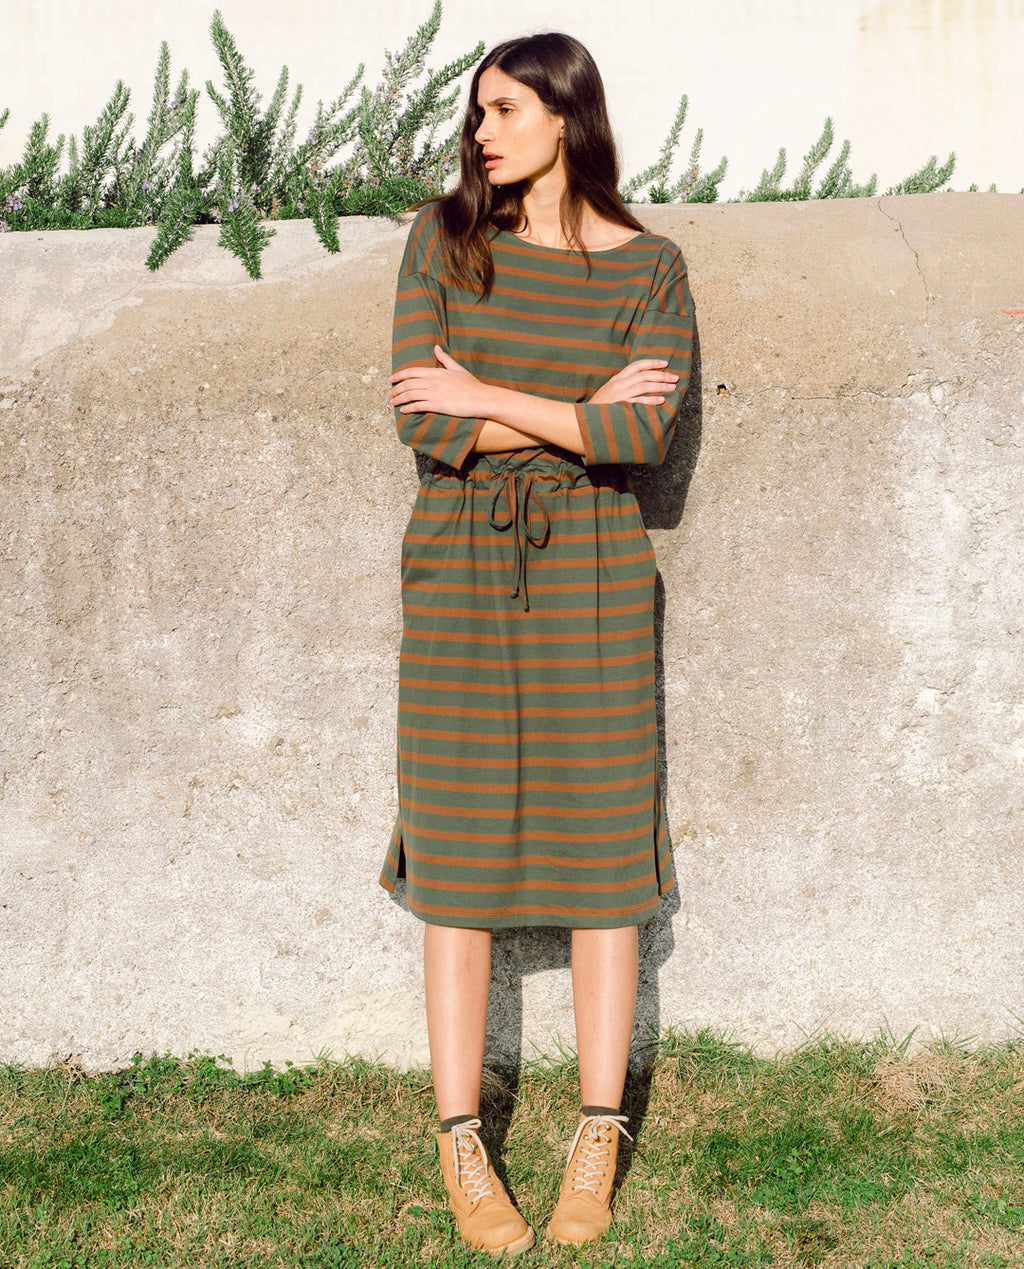 Bellamy-Sue Organic Cotton Dress In Army & Tan